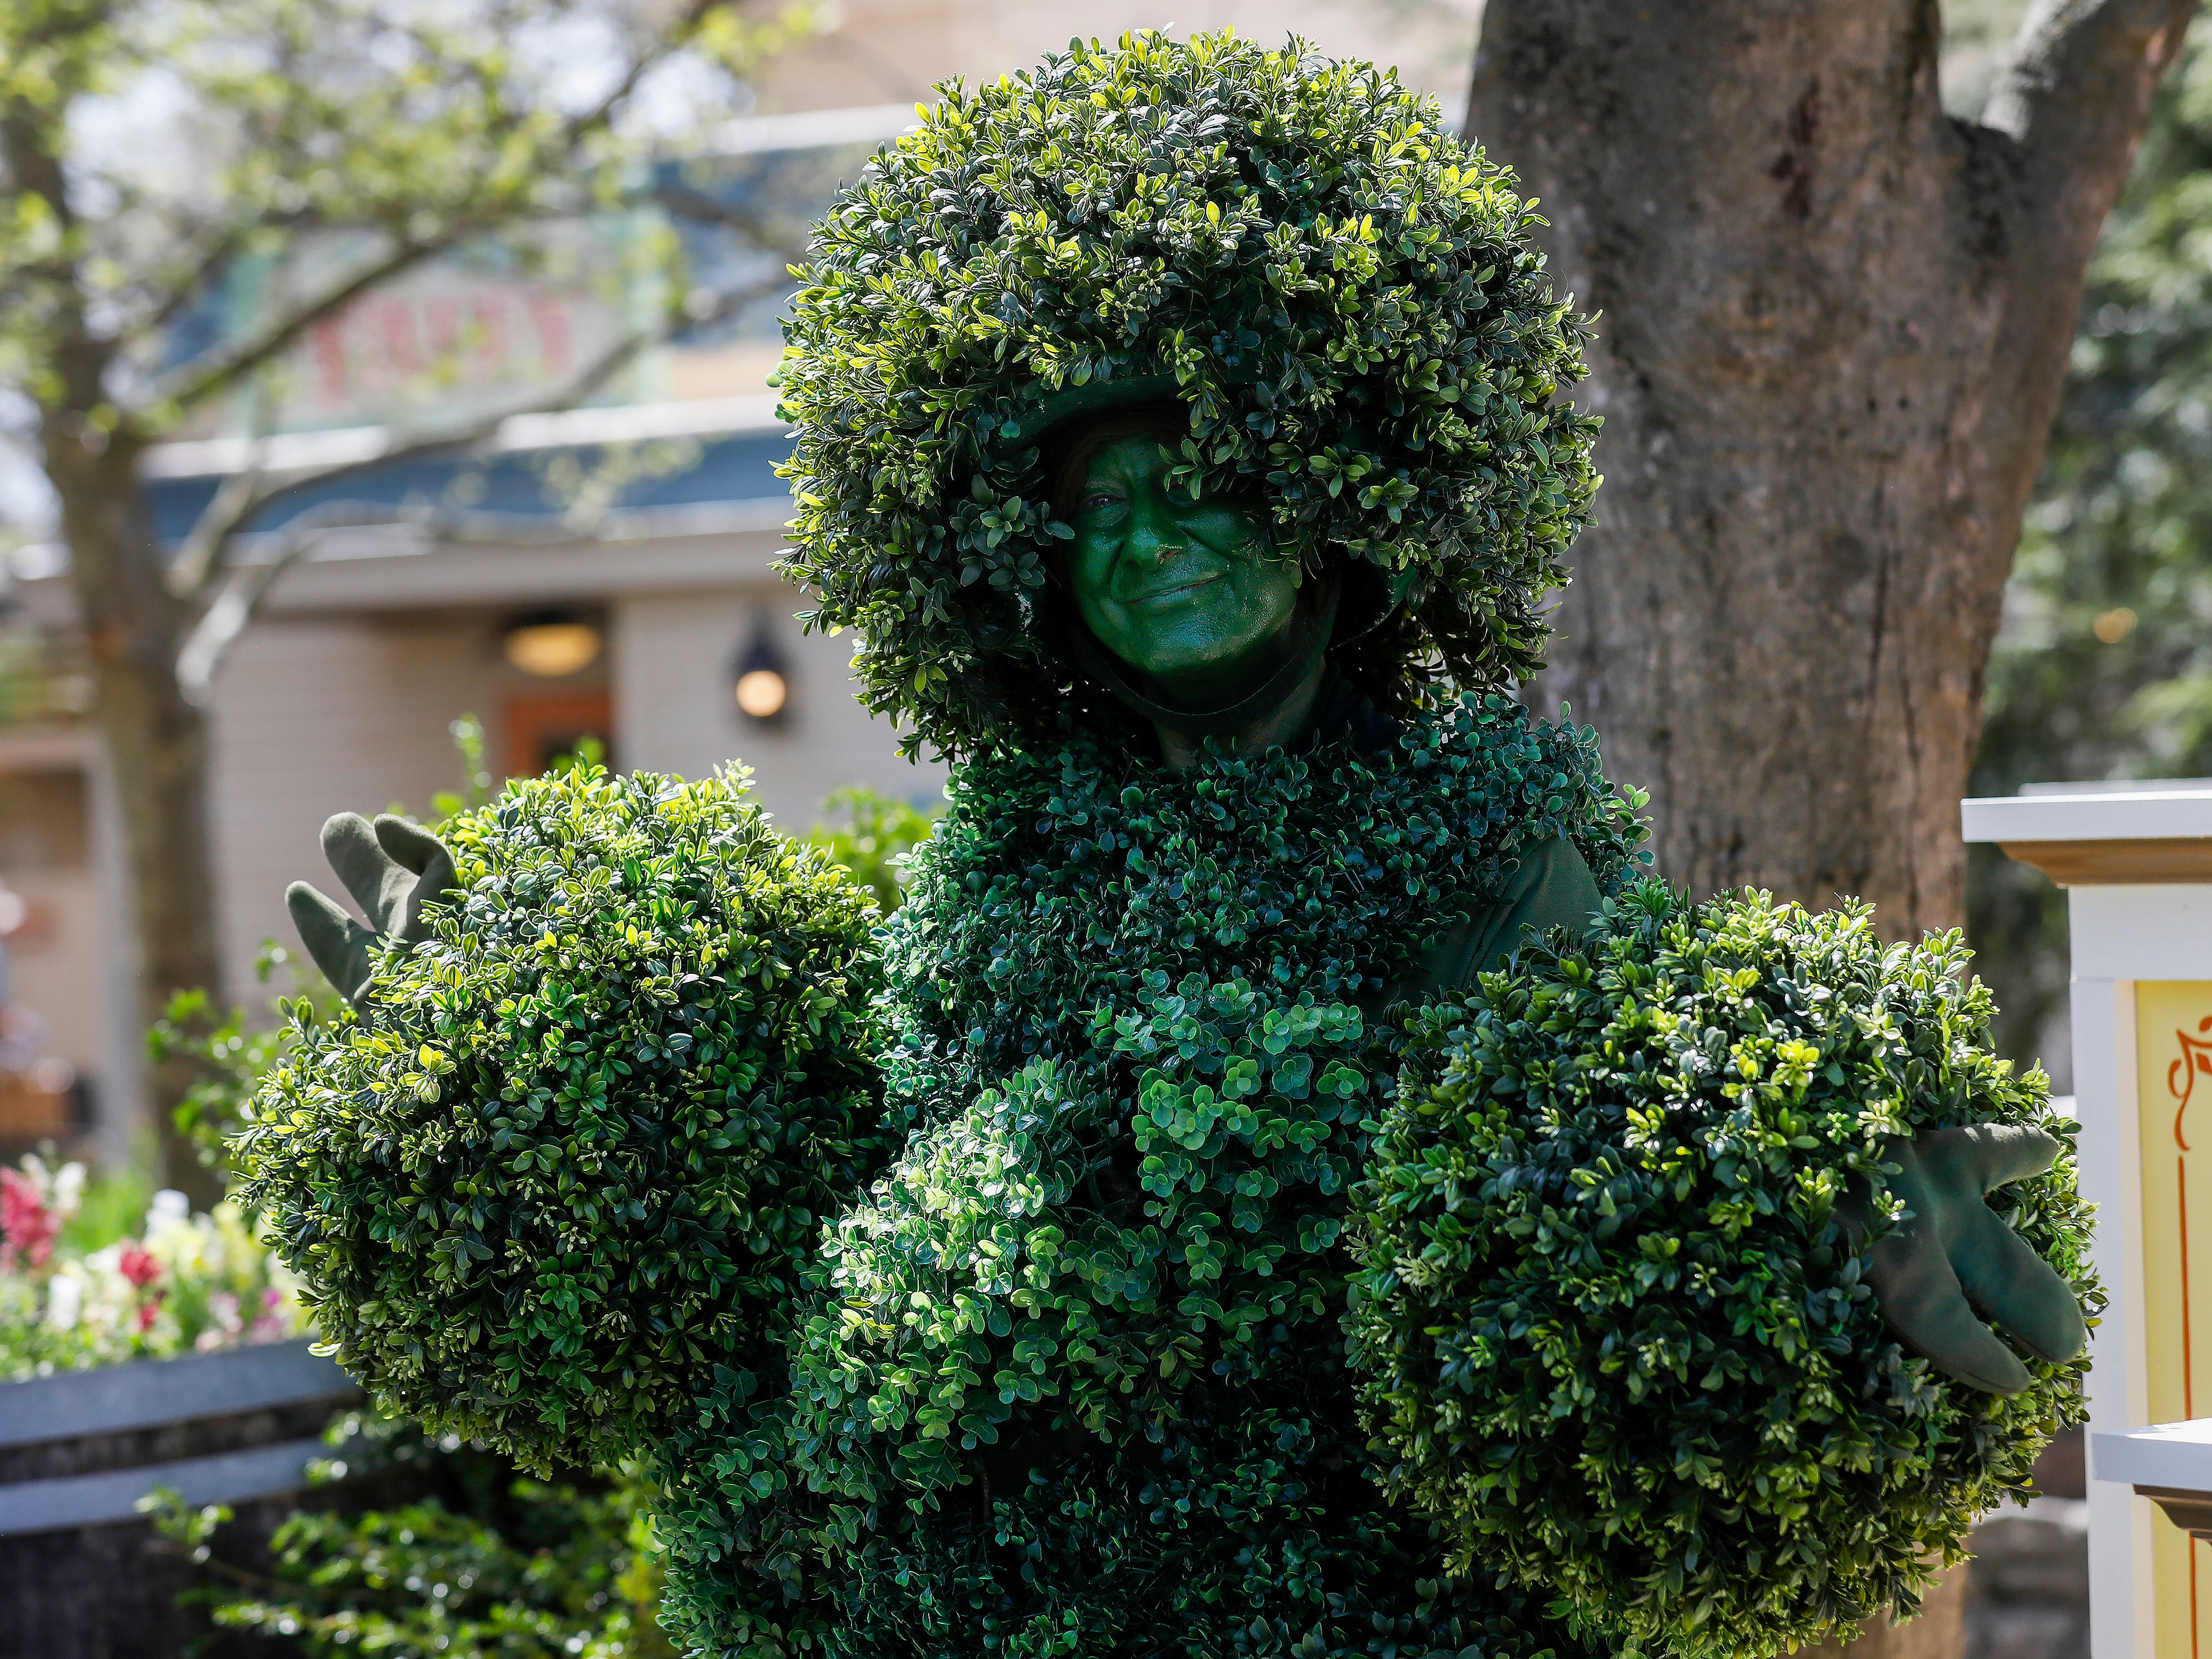 A living tree greets patrons as they walk through the entrance during the Festival of Wonder on Wednesday, April 10, 2019 at Silver Dollar City. The event runs Wednesdays through Sundays, April 10-28.